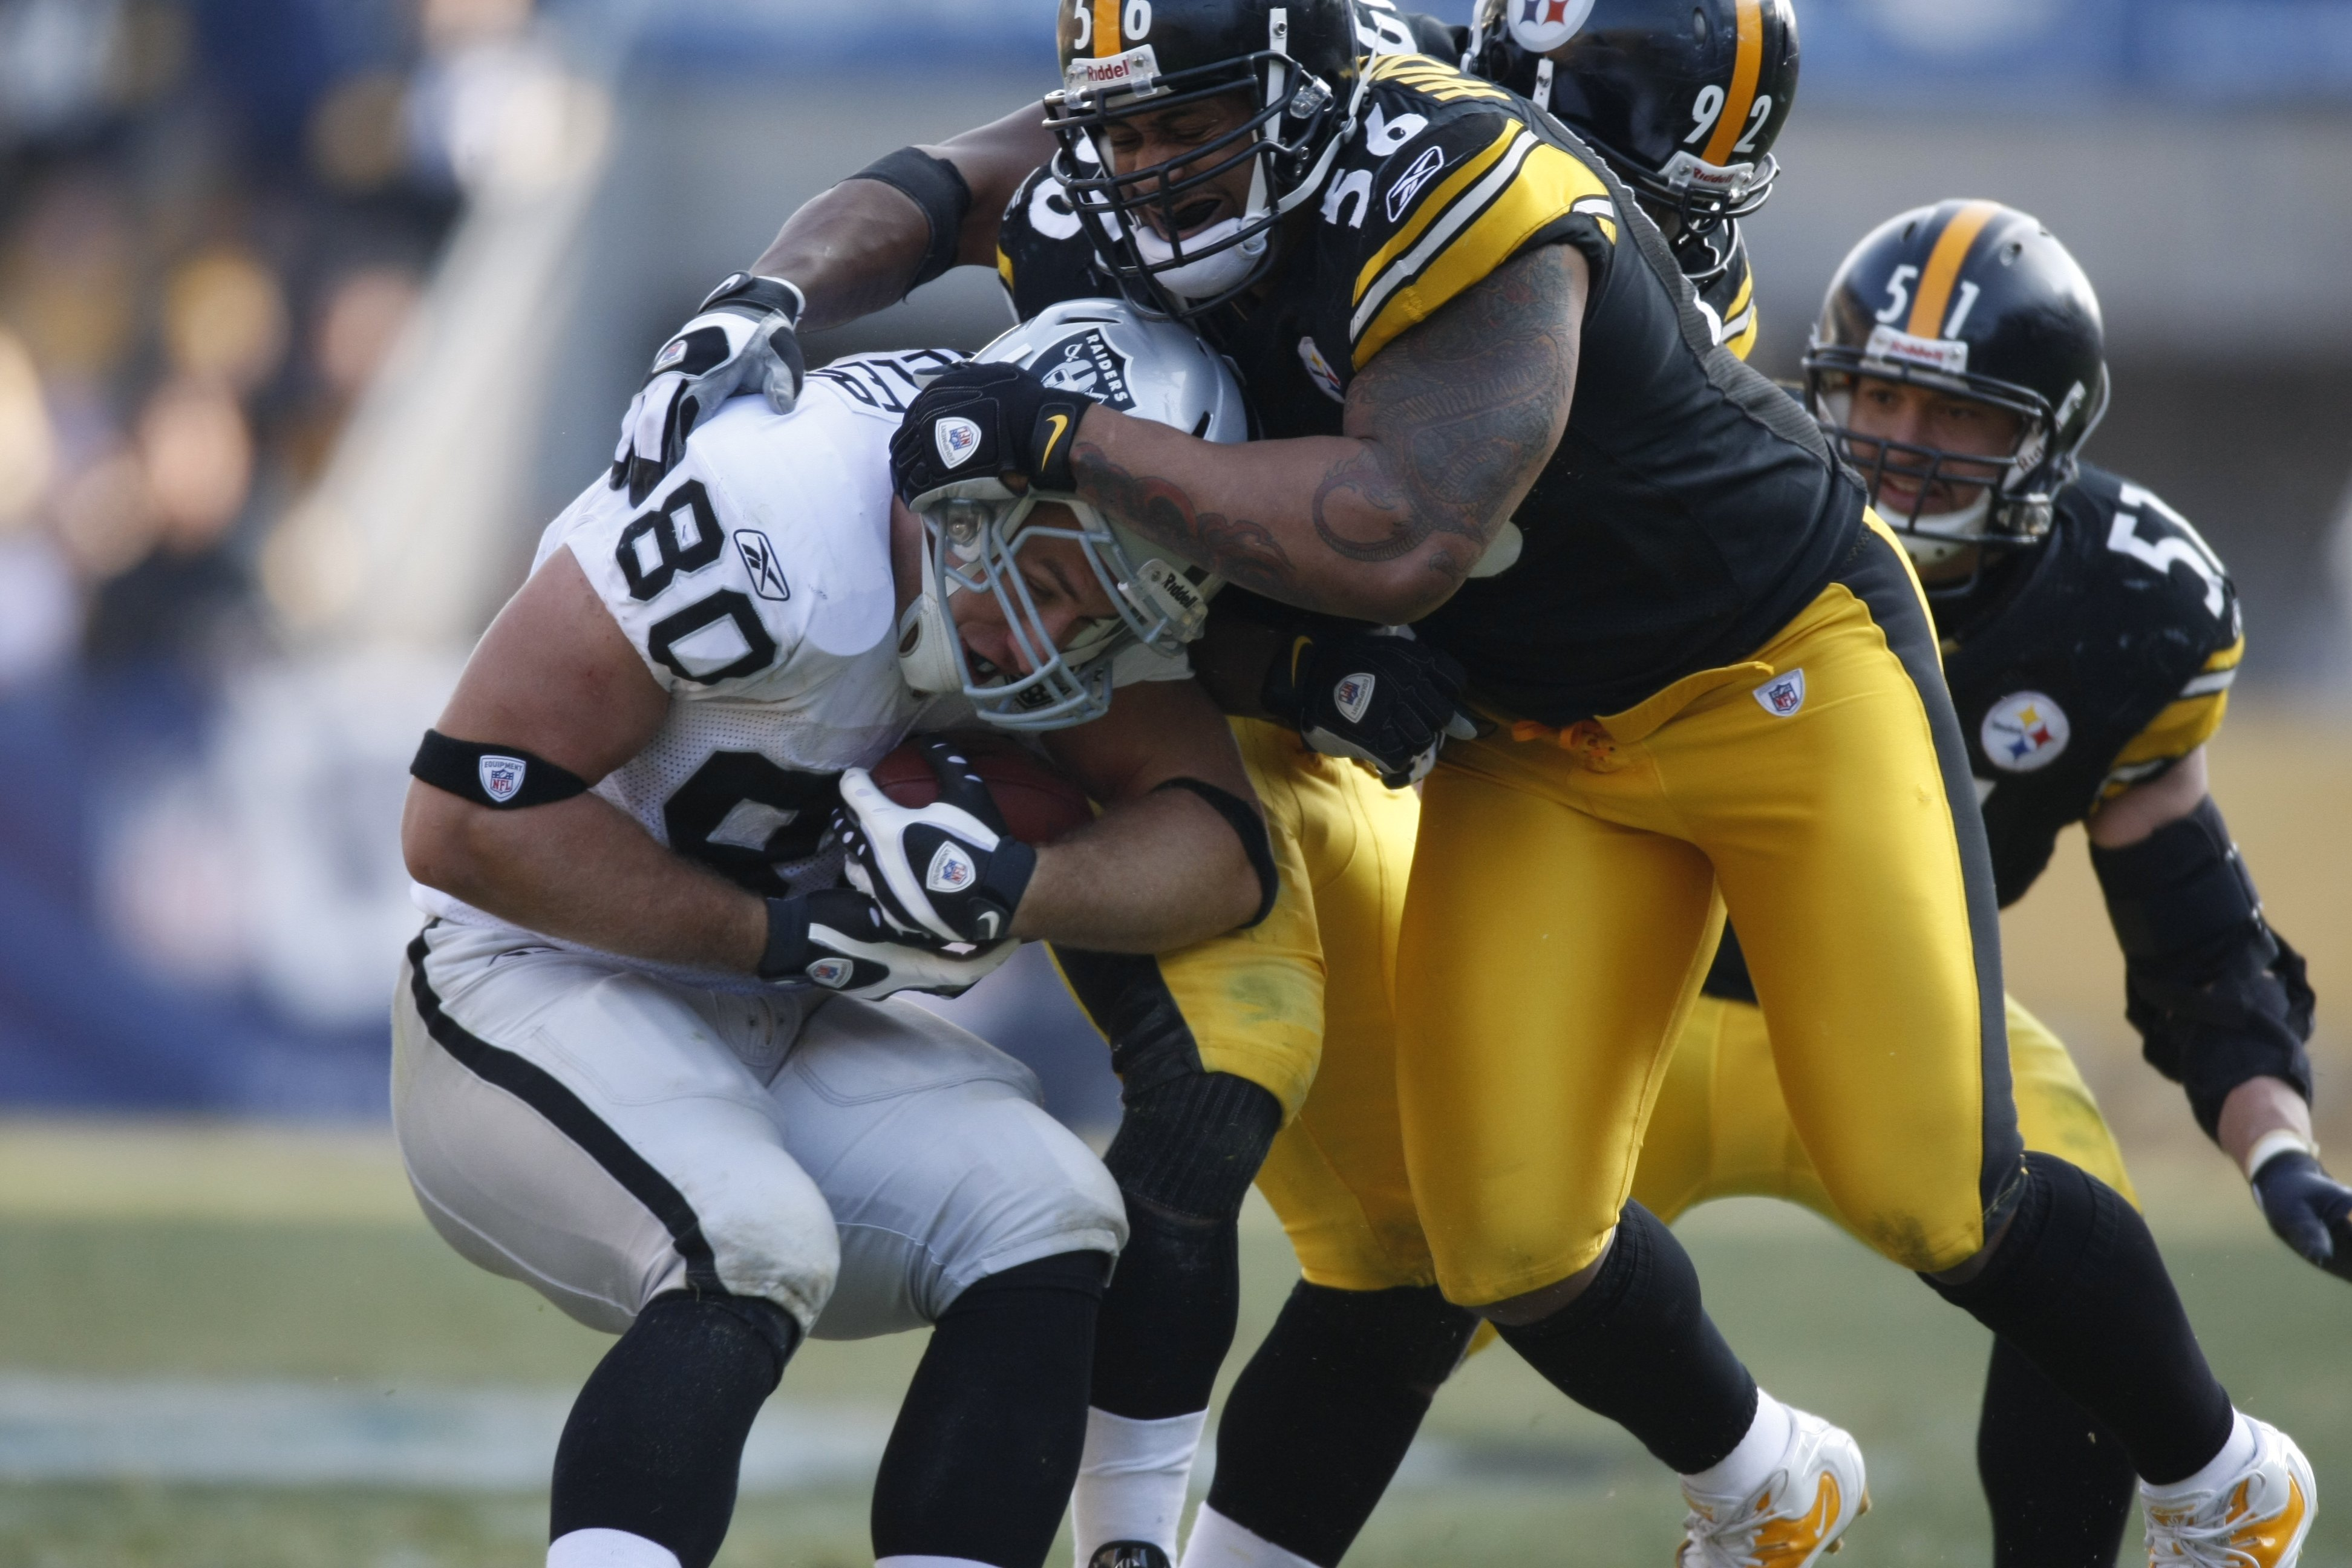 109f5991a67 PITTSBURGH - DECEMBER 06  LaMarr Woodley  56 of the Pittsburgh Steelers  tackles Zach Miller